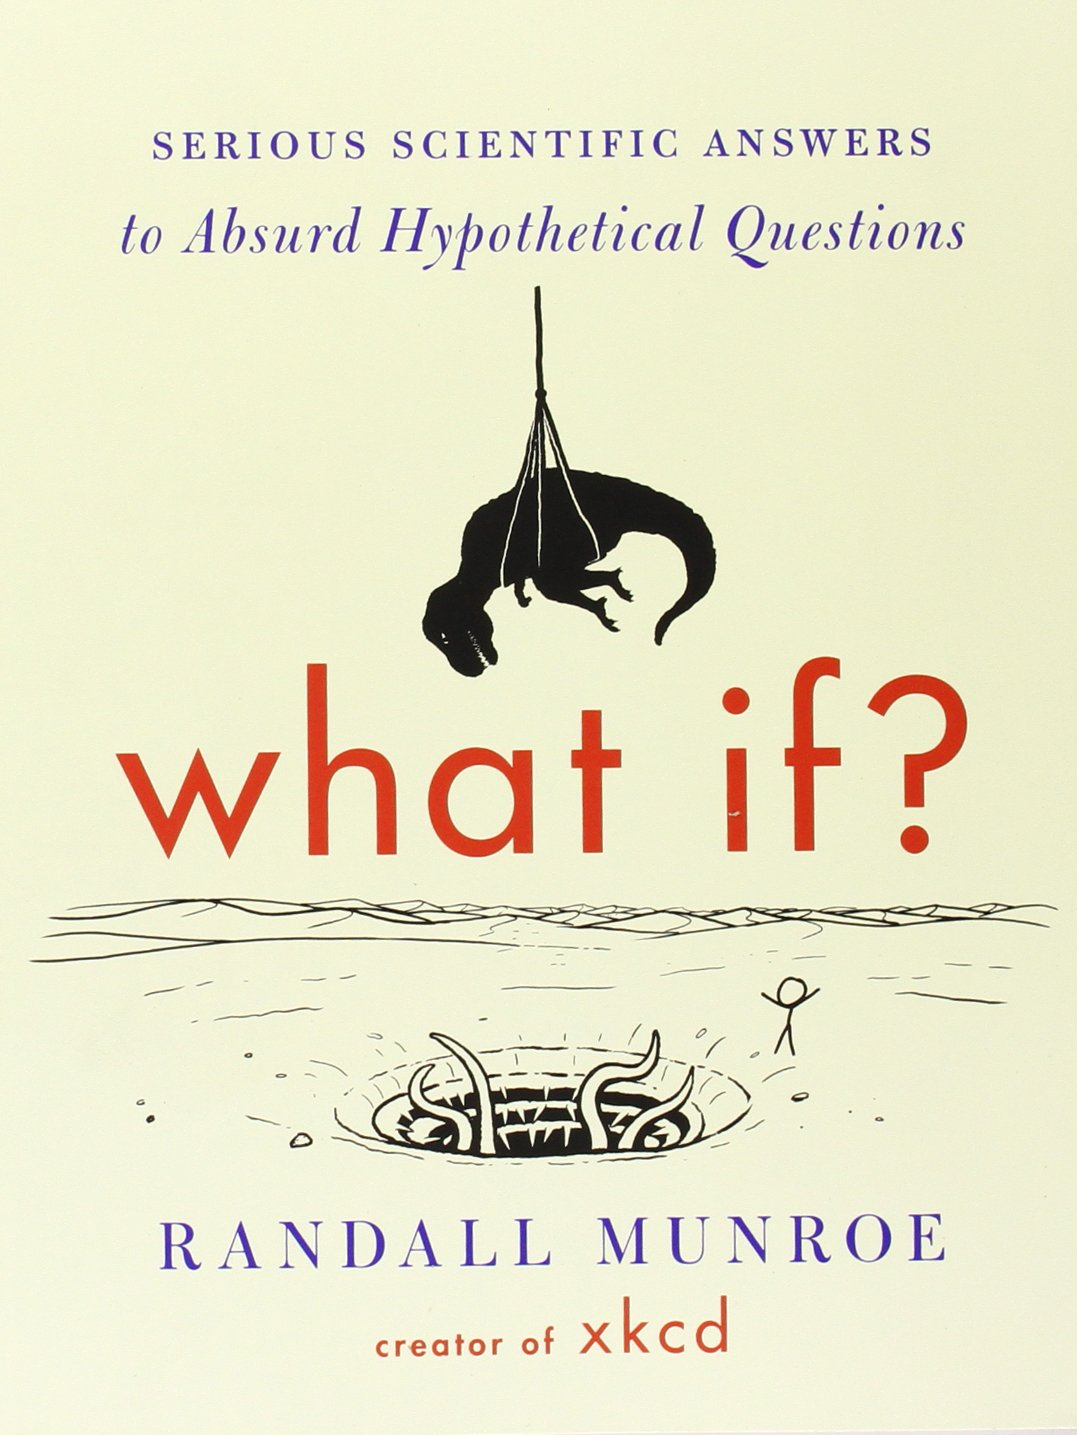 what if international edition serious scientific answers to absurd hypothetical questions randall munroe 9780544456860 amazoncom books